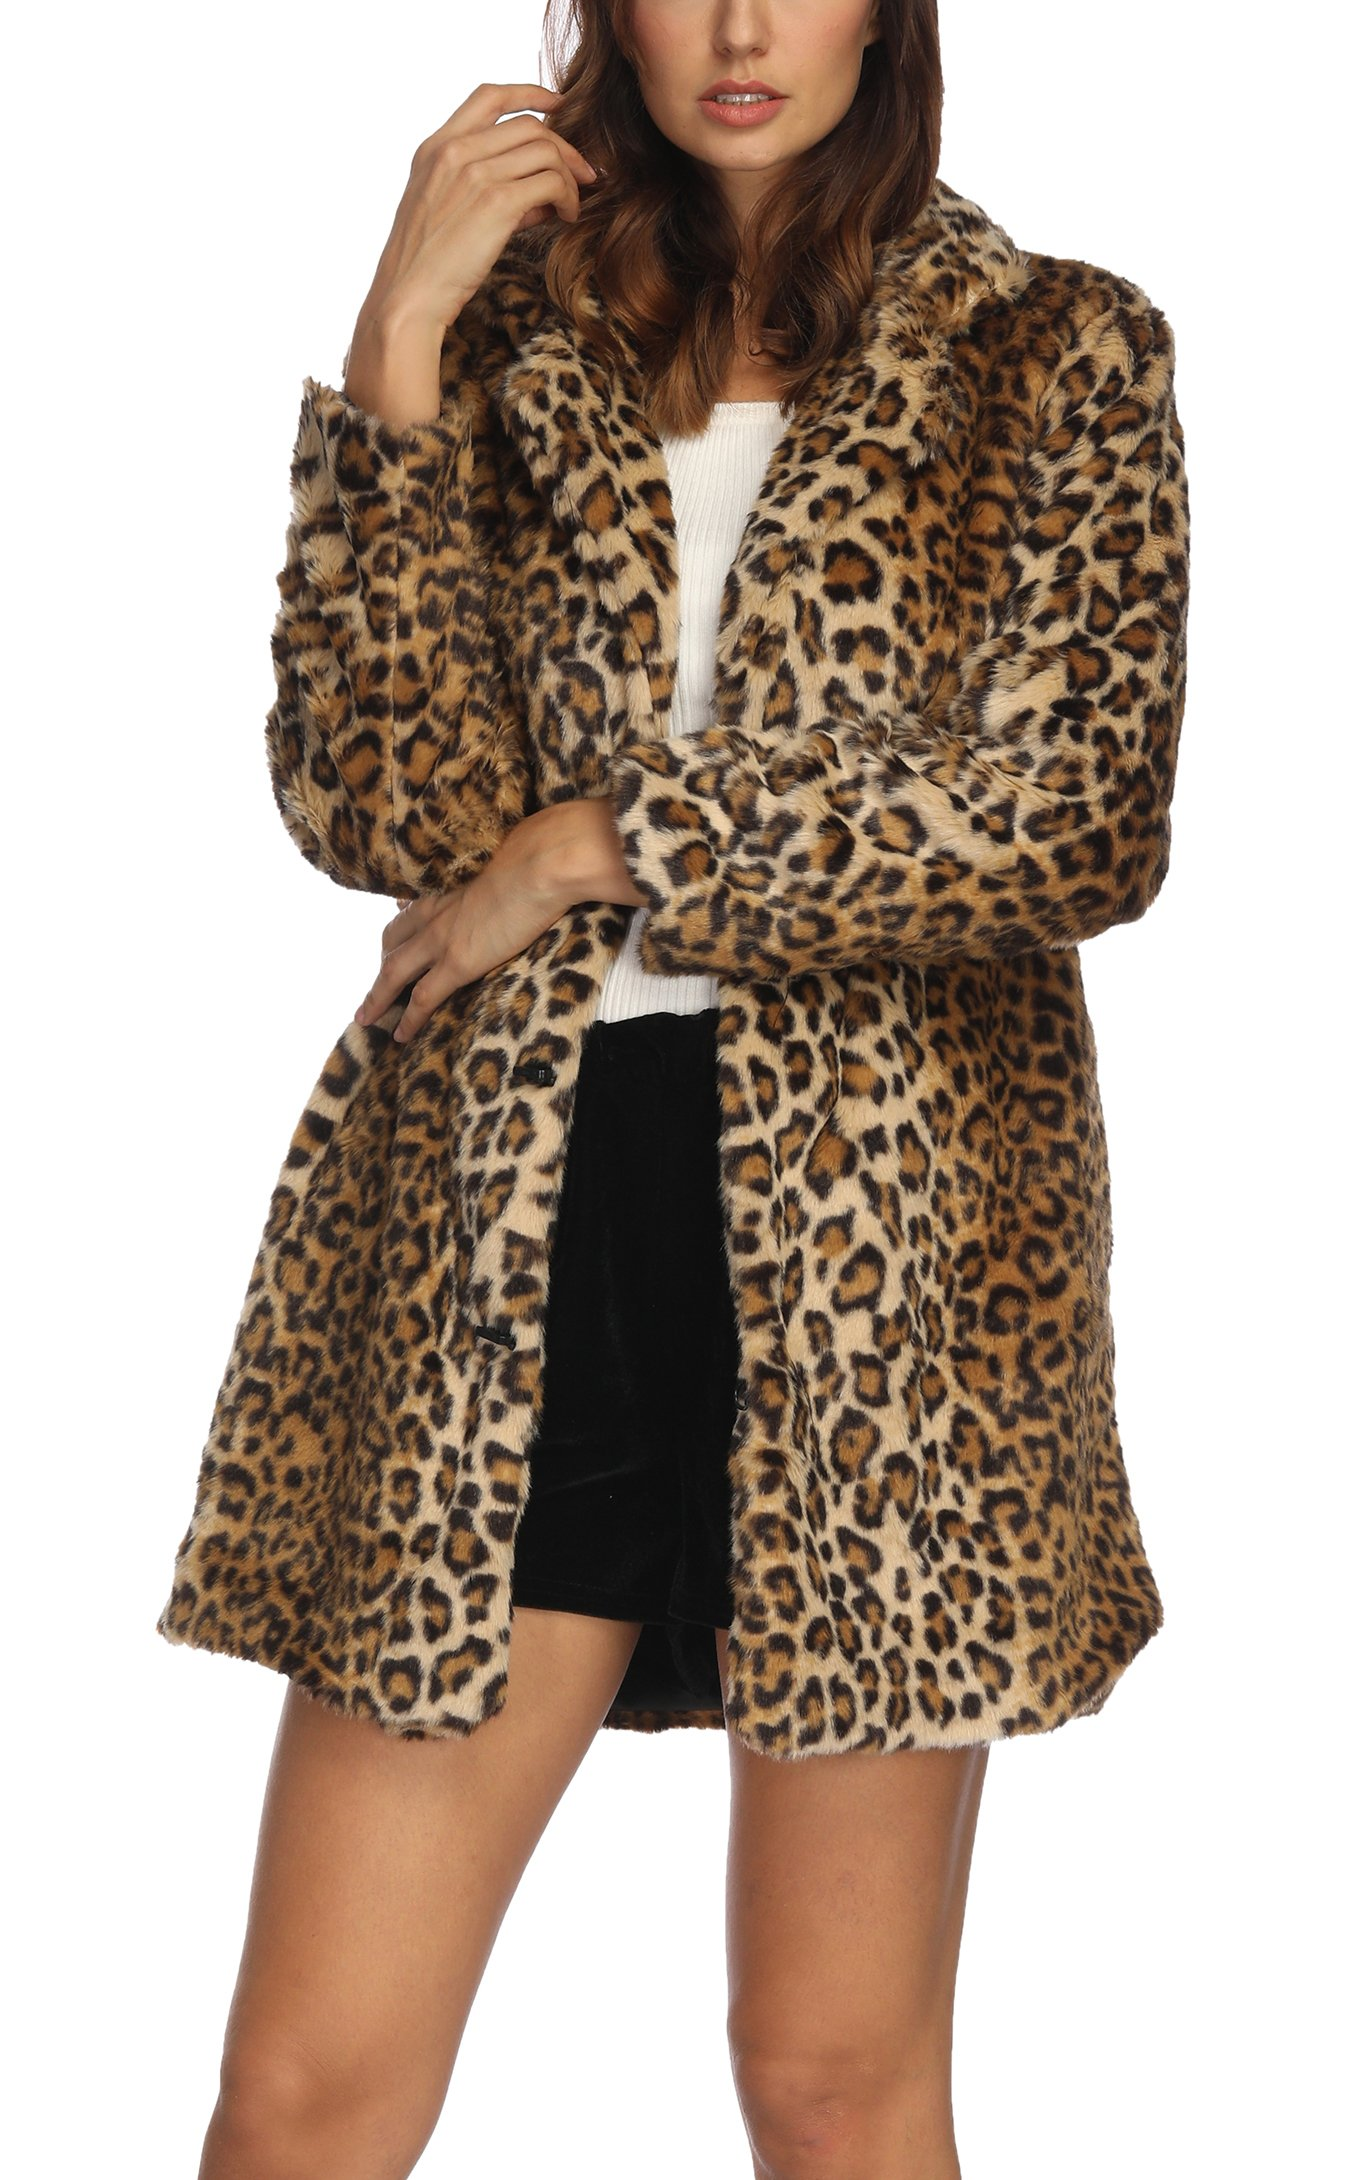 Women's Leopard Faux Fur Coat Winter Outerwear Long Sleeves Warm Jacket Sexy Lapel Overcoat,M Leopard